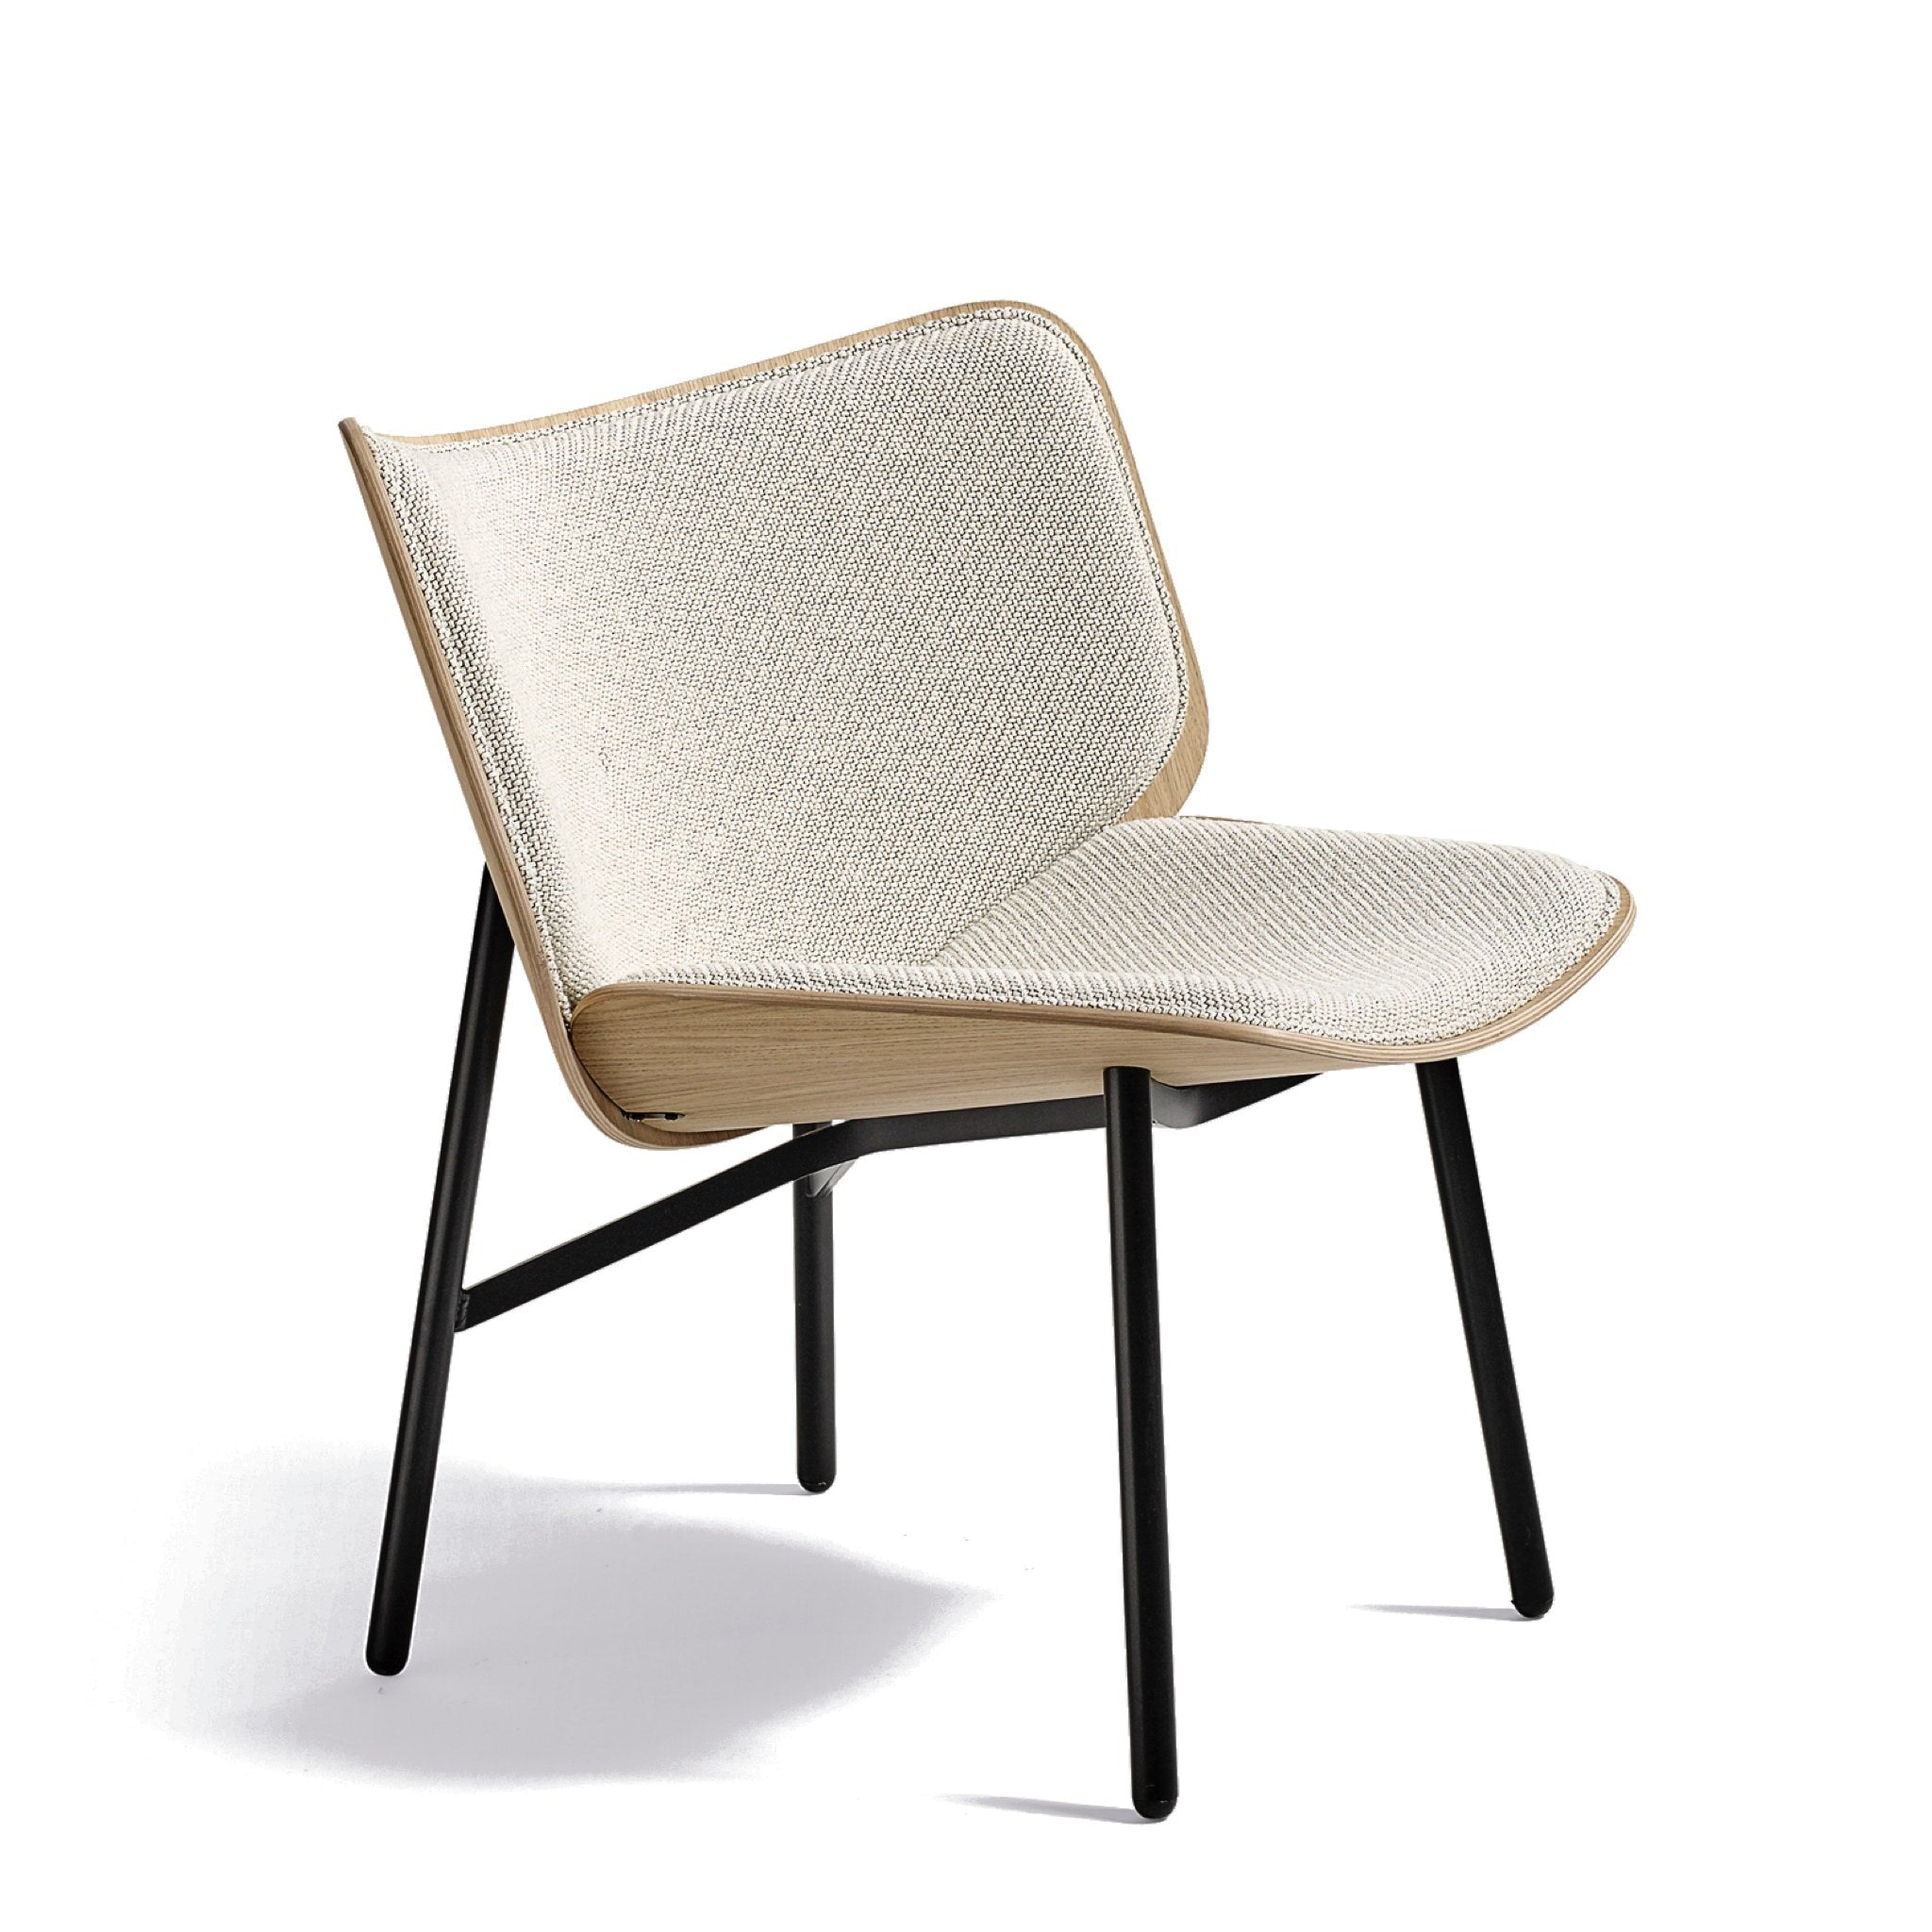 Dapper Lounge Chair by Hay